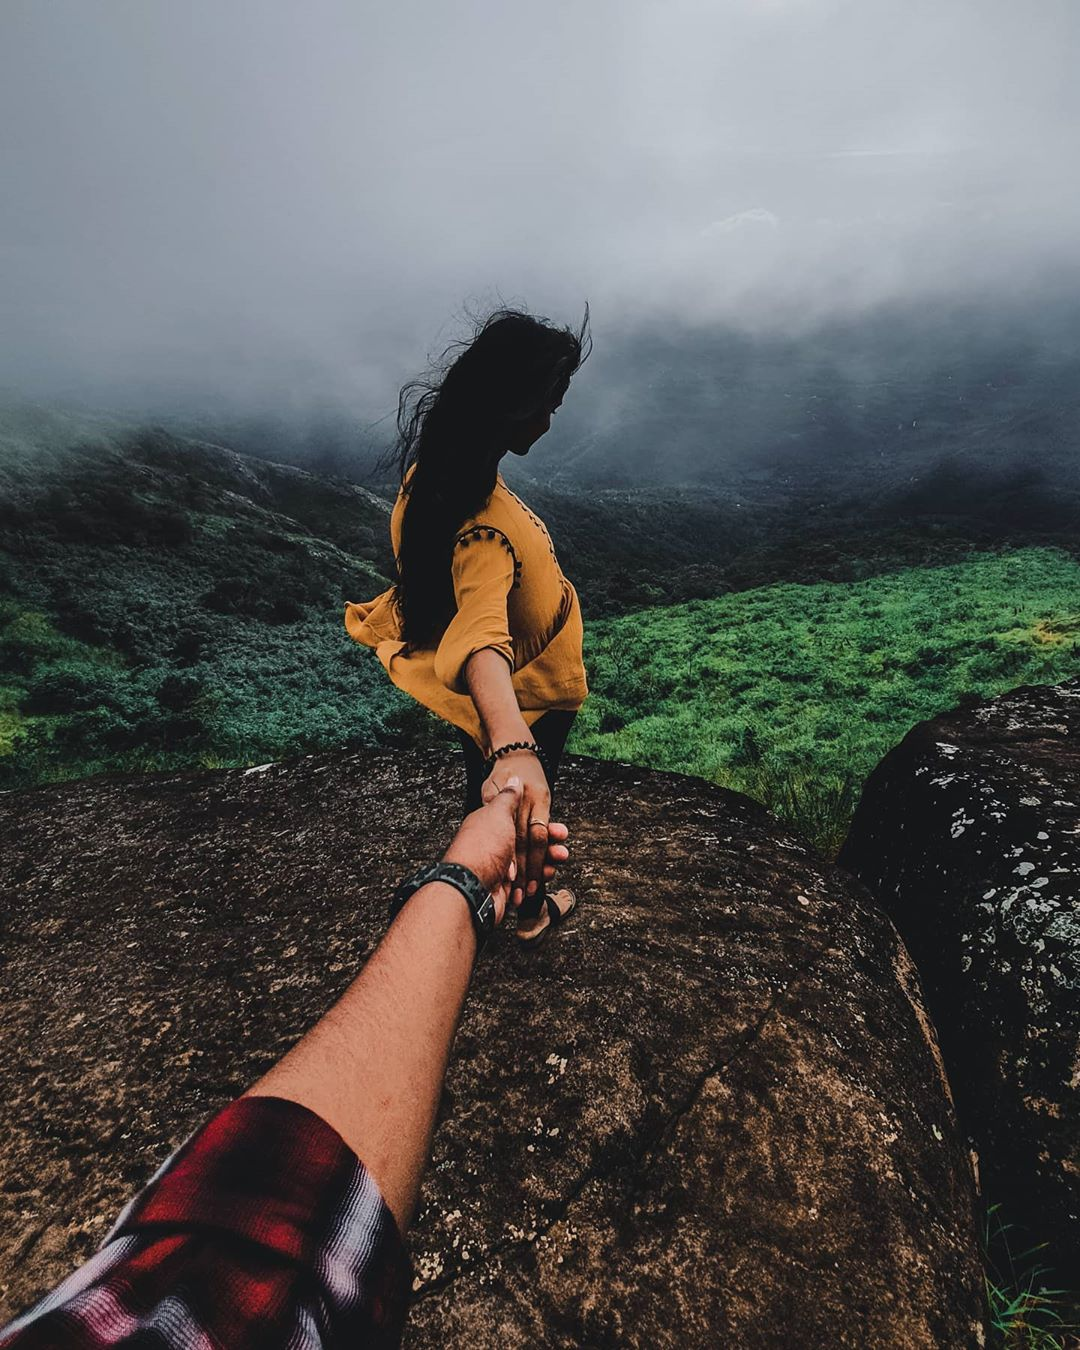 Holding hands in the mountain